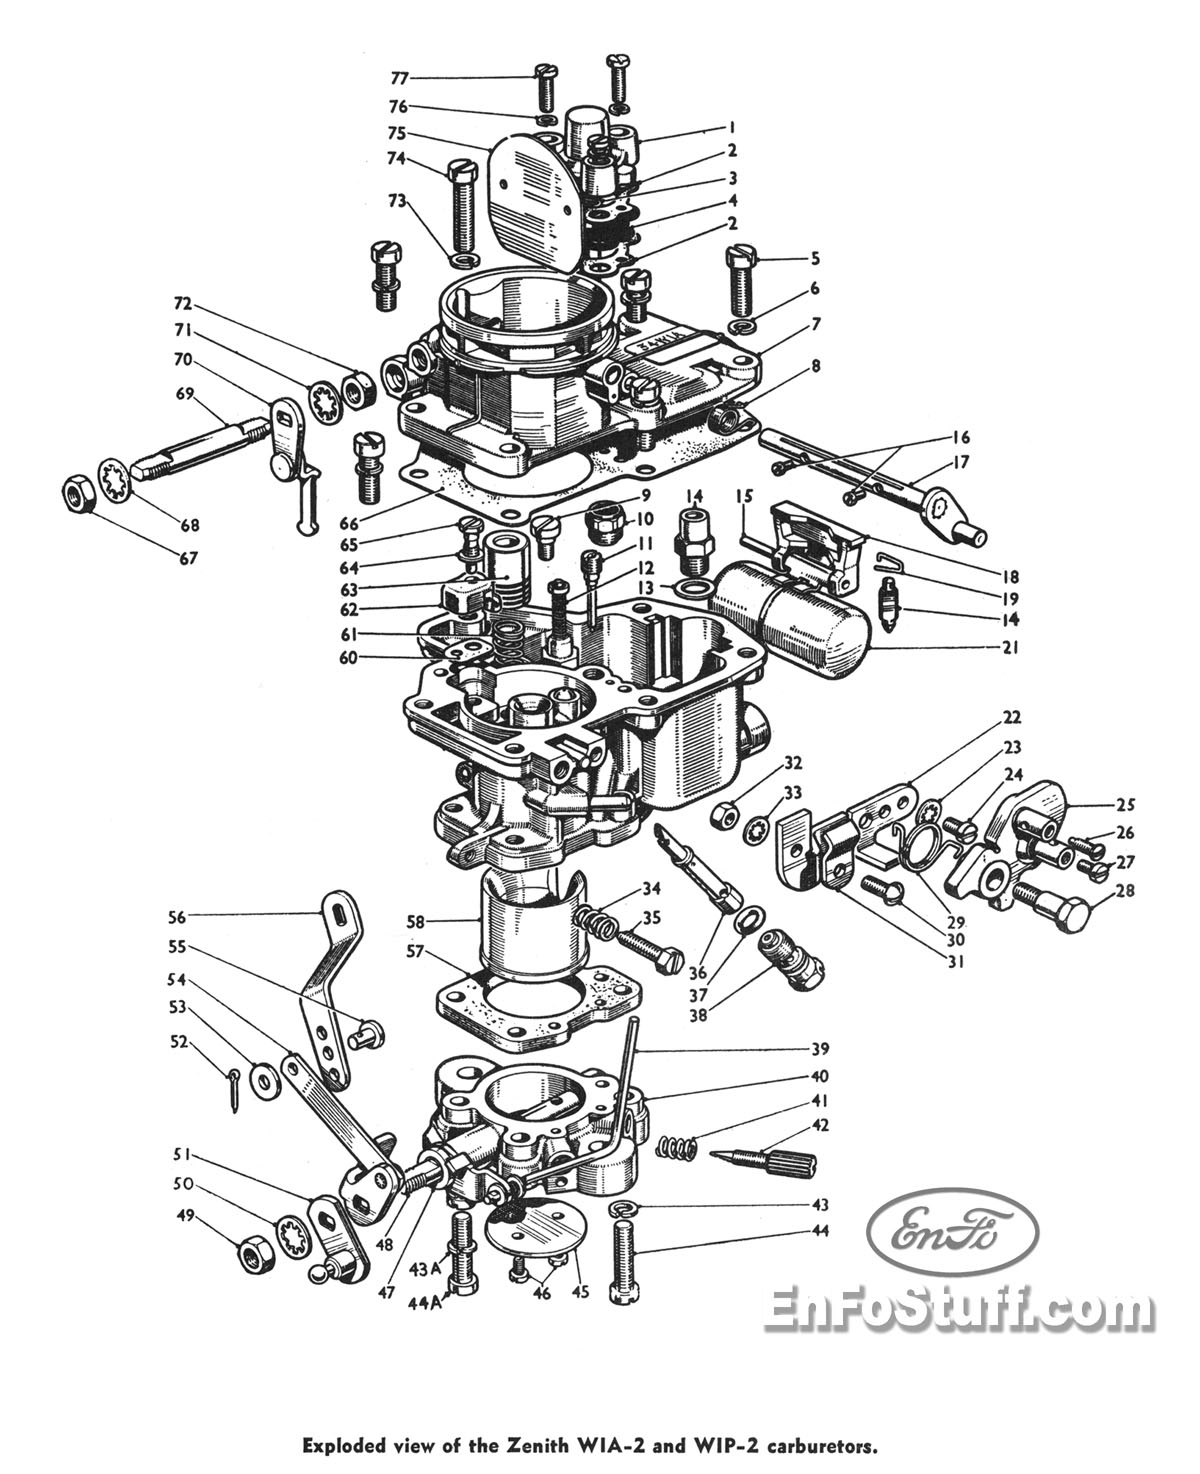 carburetor diagram zenith wia 2 and wip 2 consul mkii zodiac and rh enfostuff com Vintage Zenith Carburetors Zenith Carburetors for Tractors